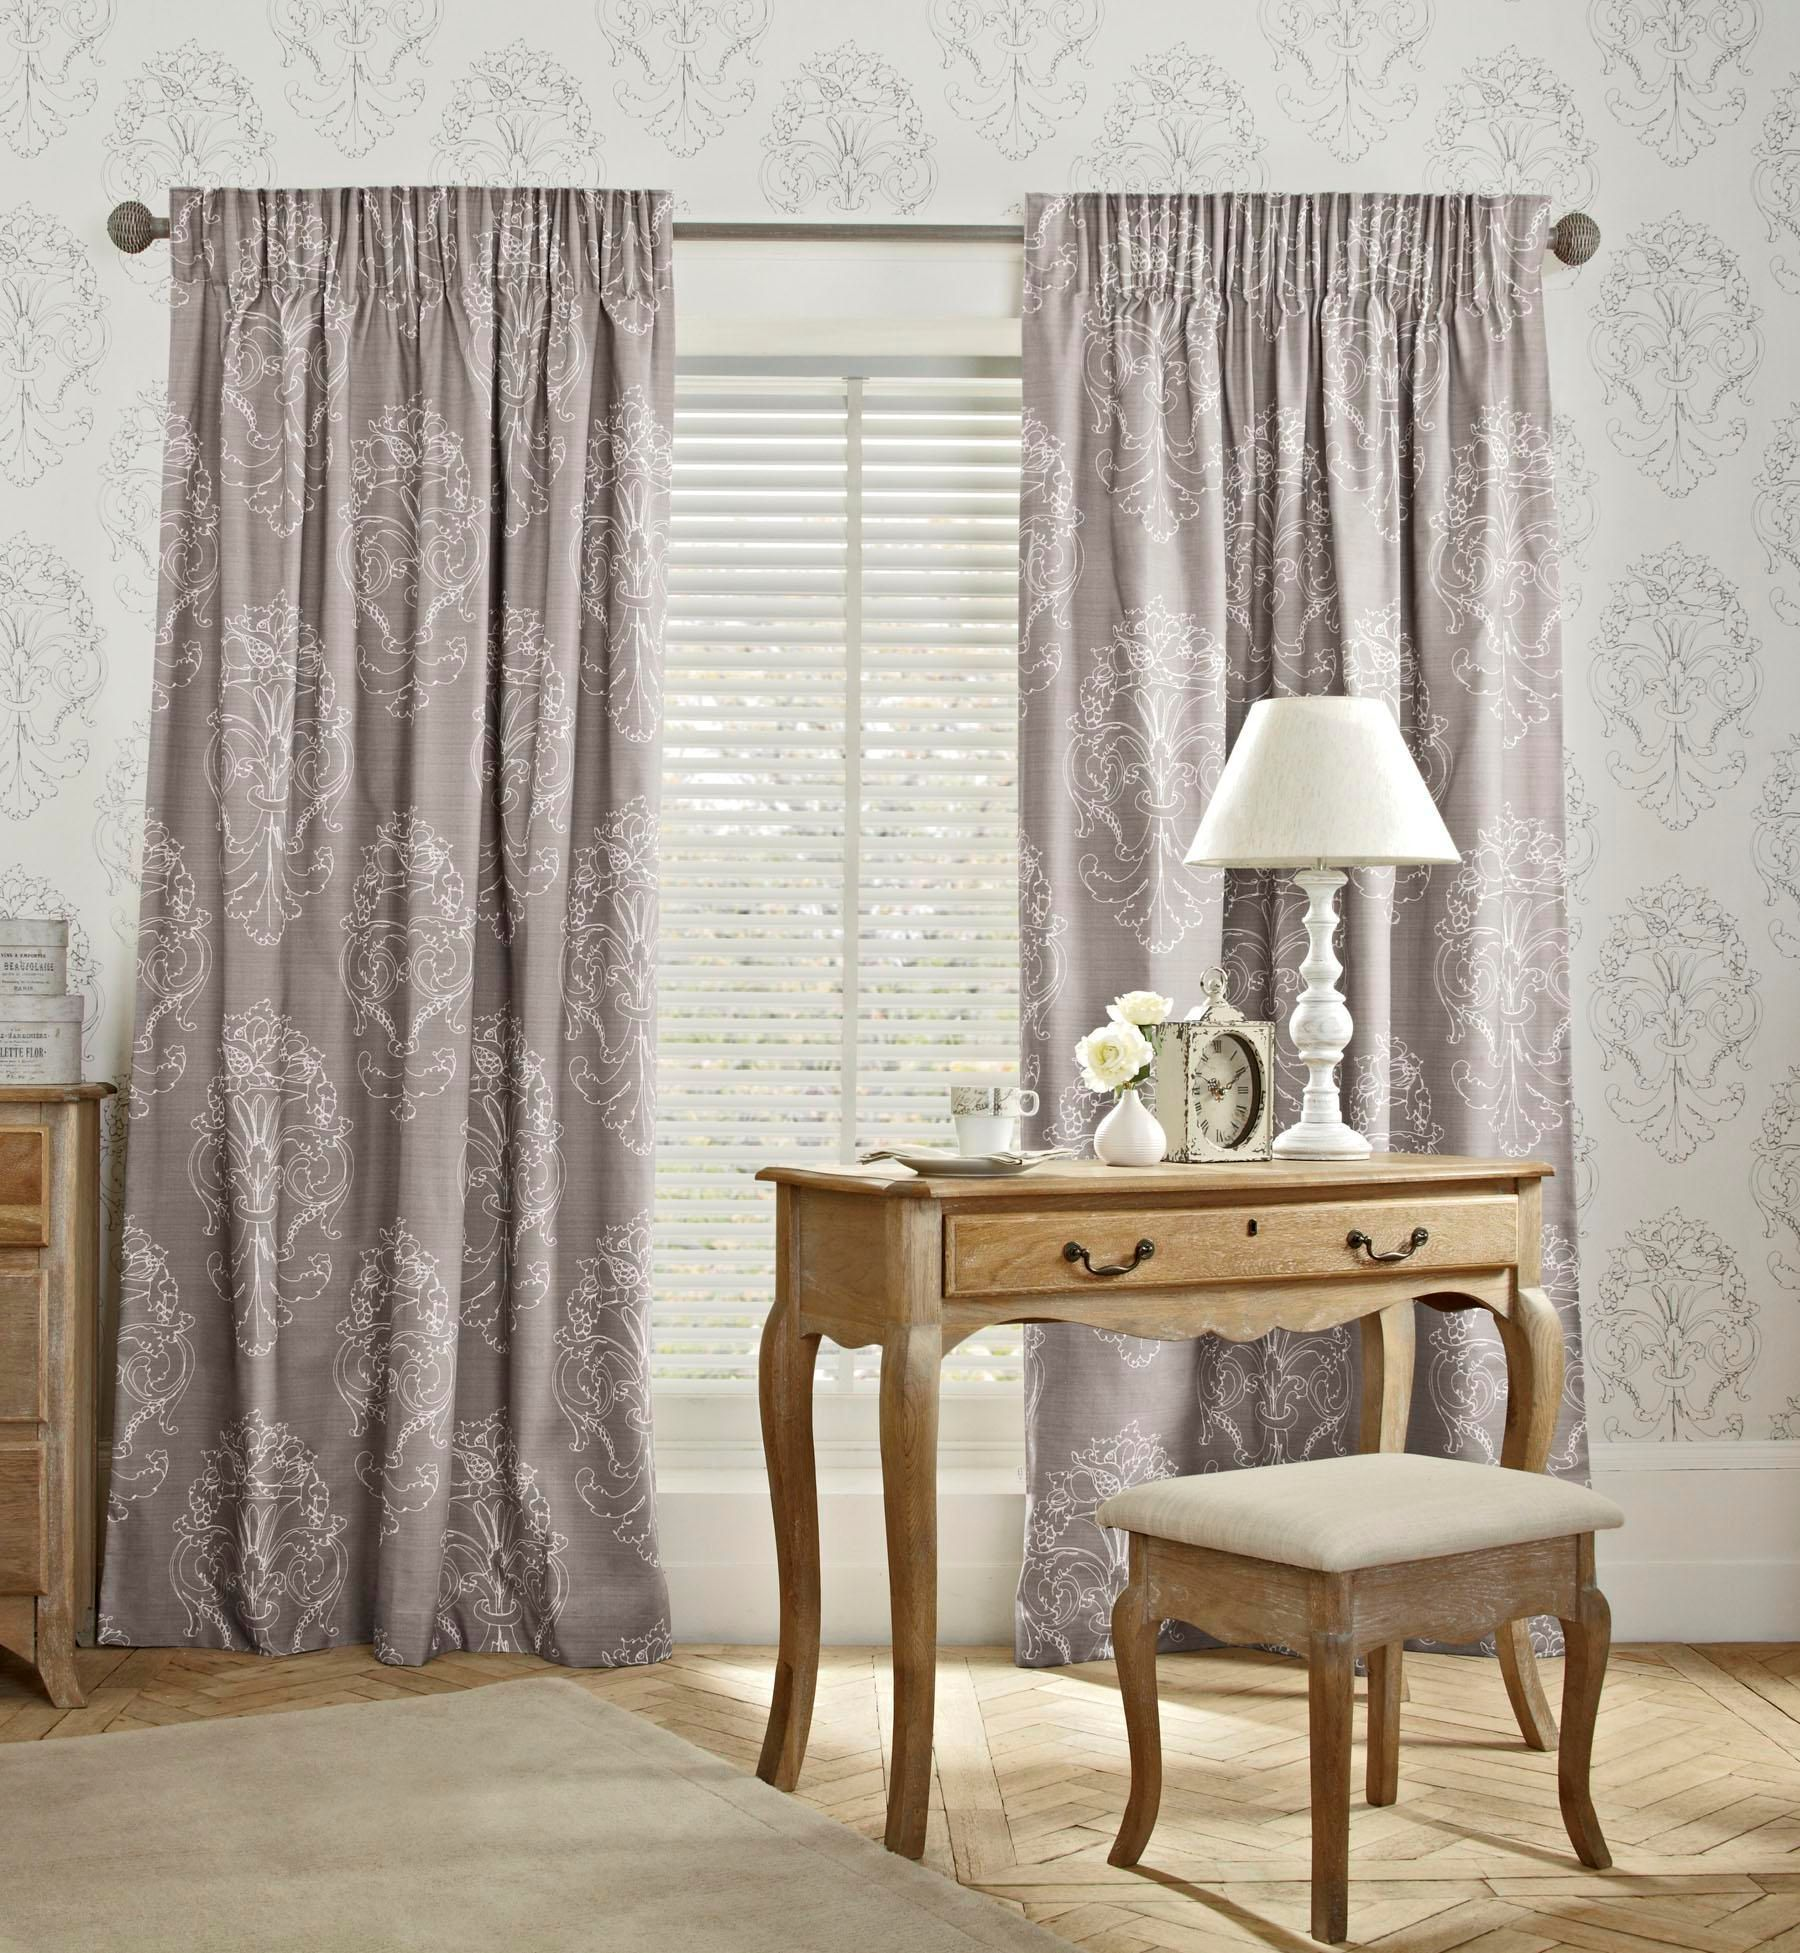 Buy French Damask Printed Pencil Pleat Curtains From The